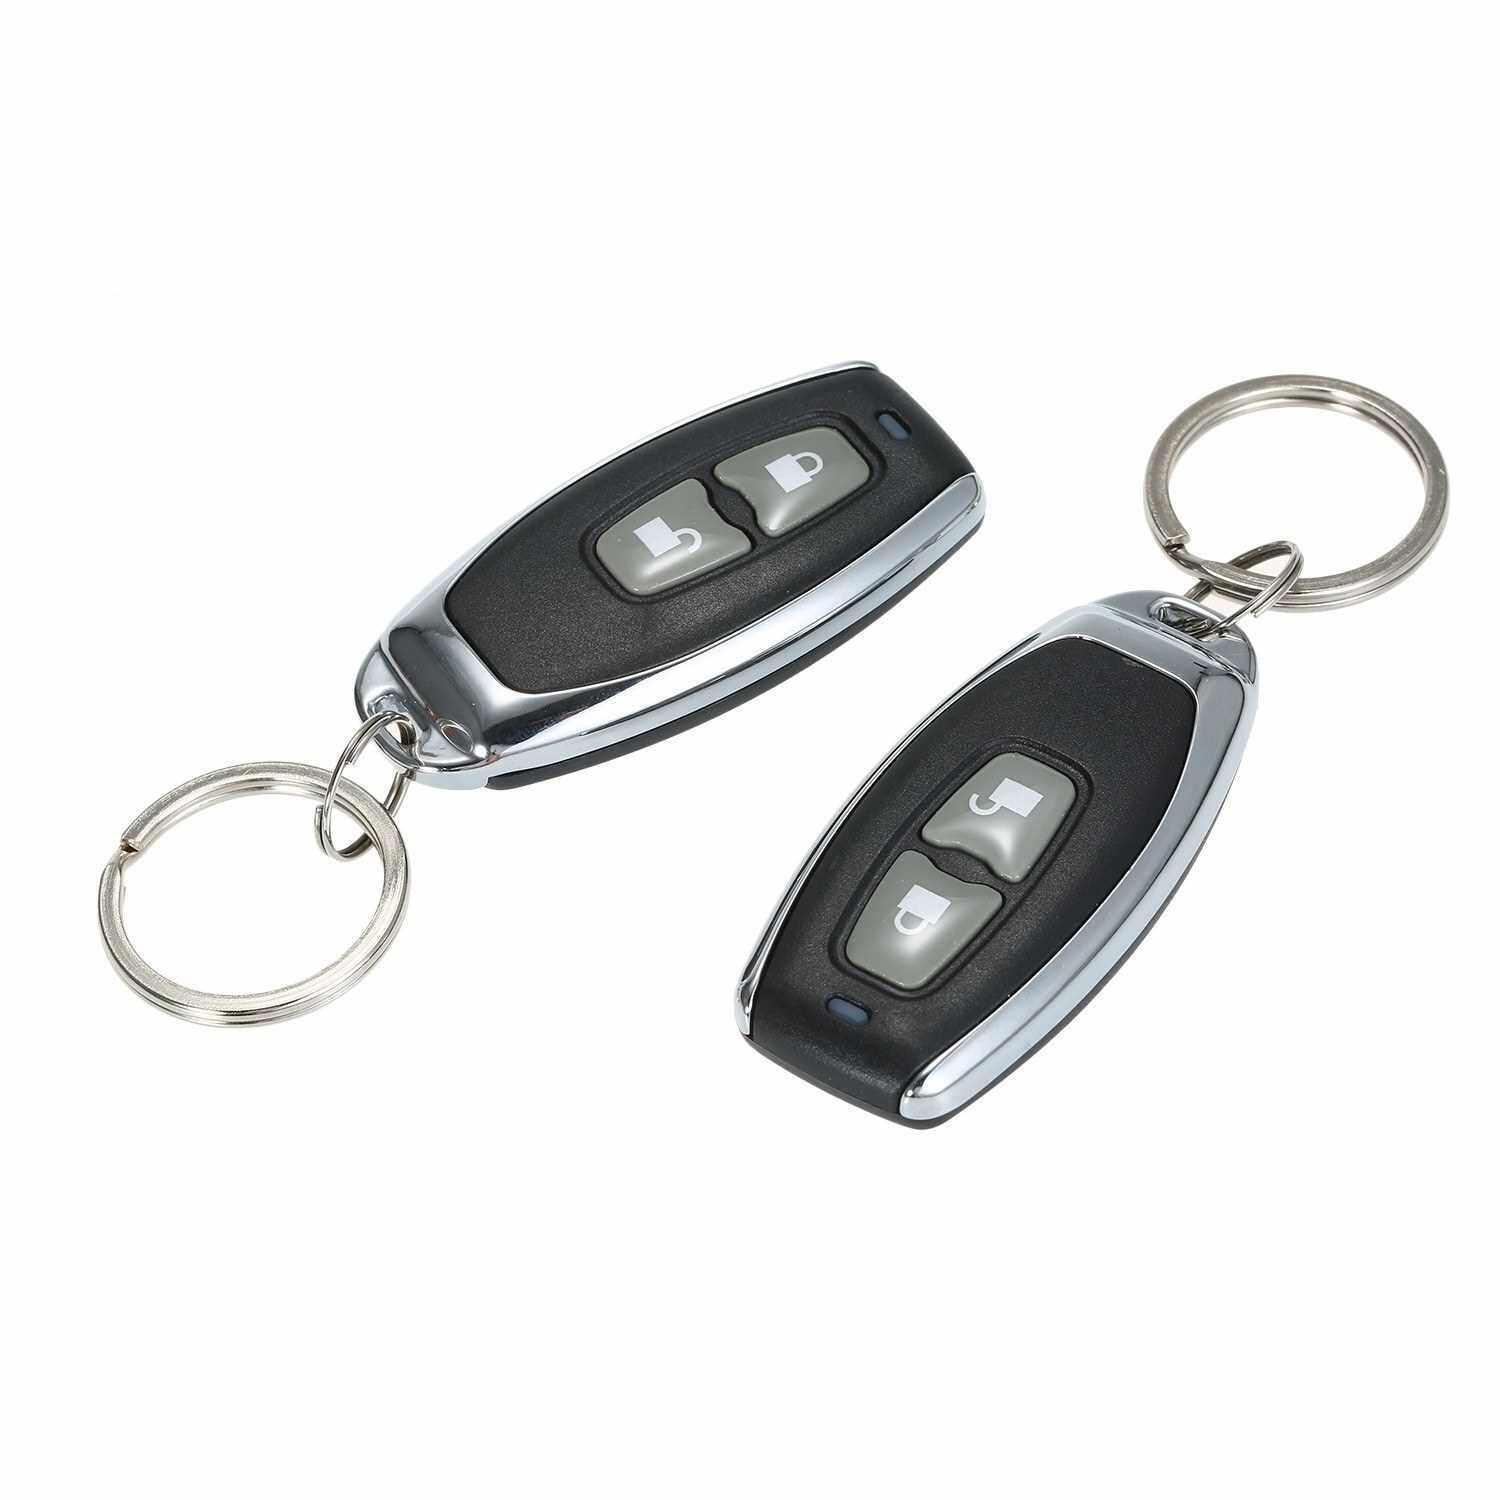 Best Selling Universal Car Door Lock Trunk Release Keyless Entry System Central Locking Kit With Remote Control Support 1 Million Code Times (Standard)